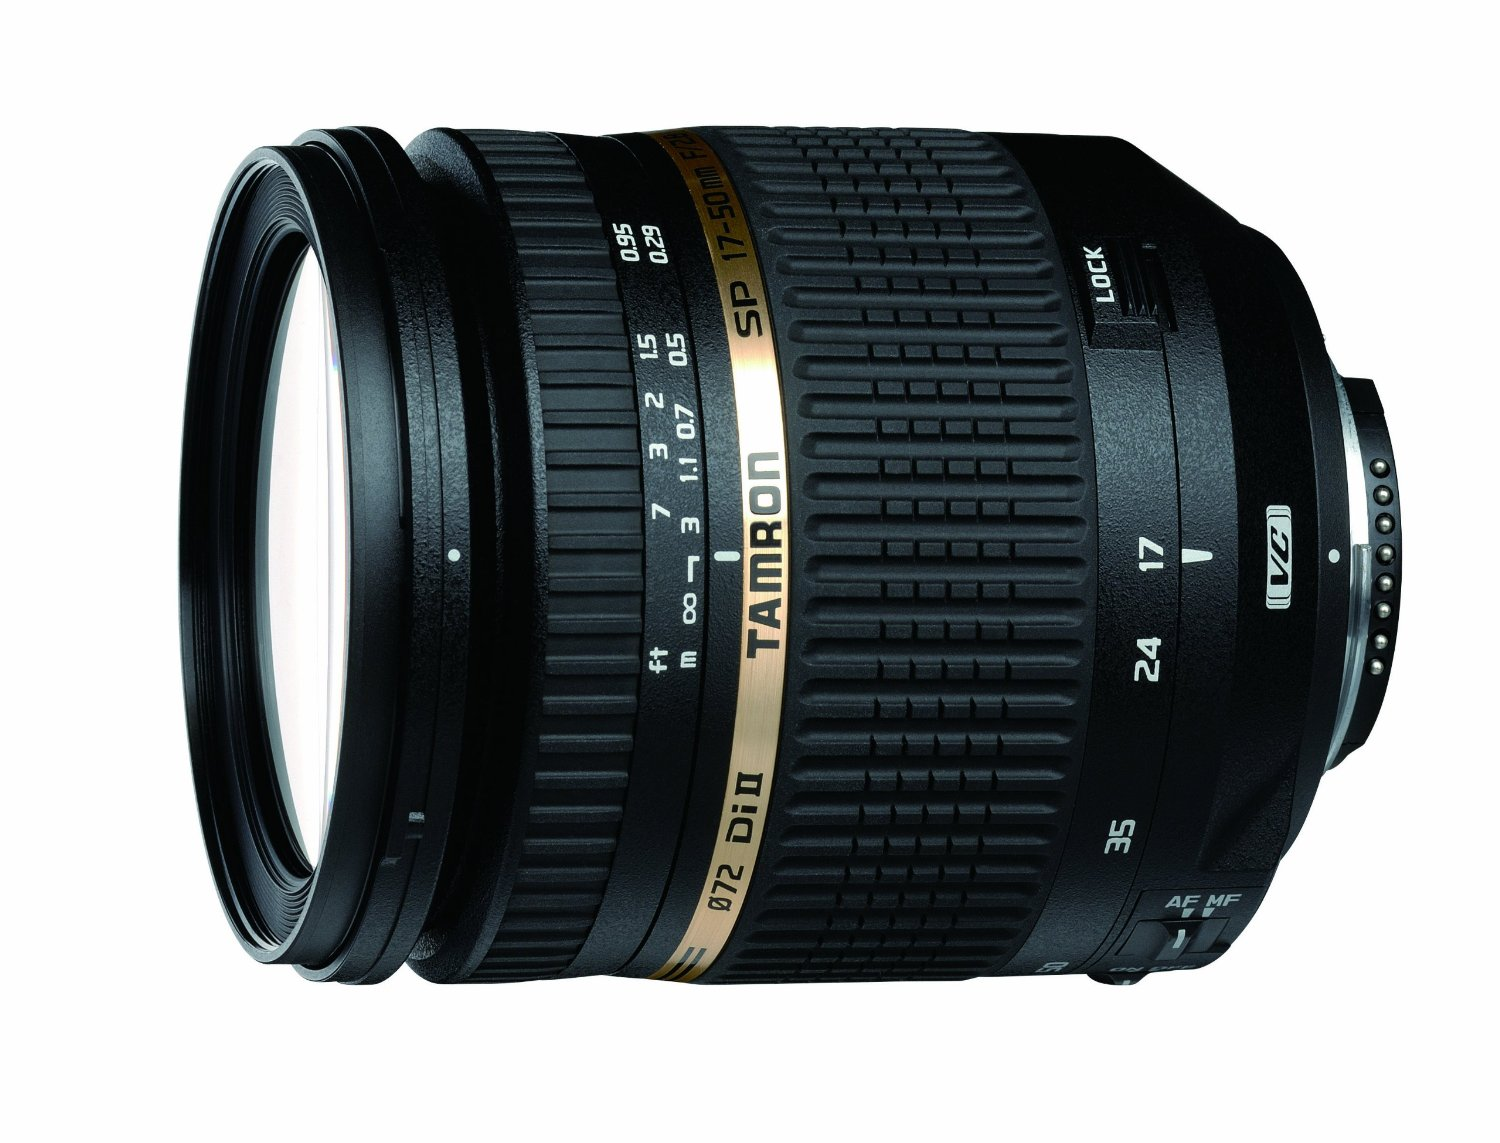 Amazon.com : Tamron Auto Focus 17-50mm F/2.8 SP XR Di II VC (Vibration Compensation) Zoom Lens for Canon EF-S Digital SLR Cameras. : Camera Lenses